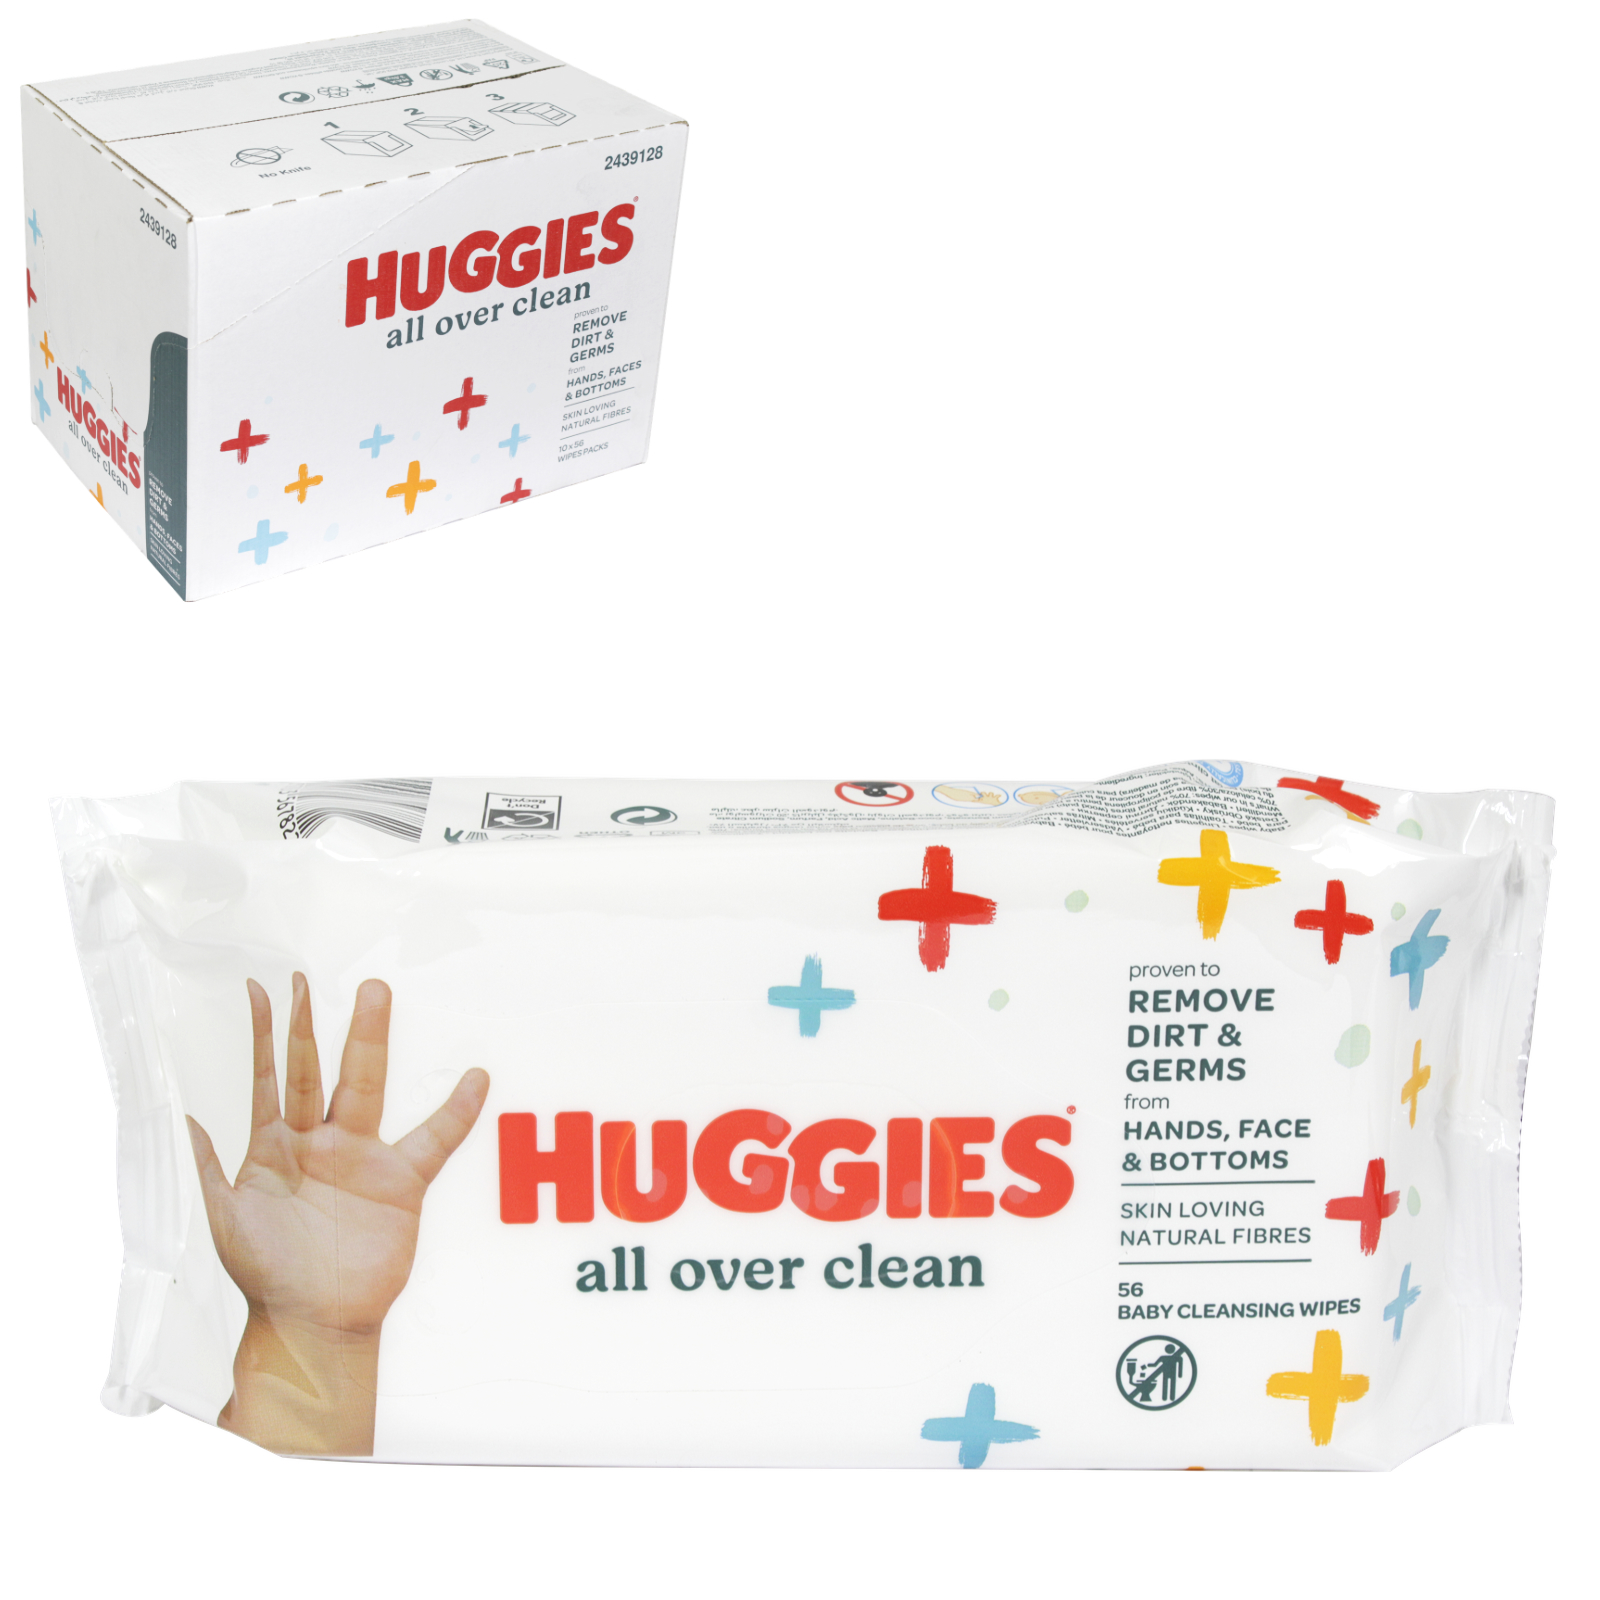 HUGGIES BABY WIPES 56S ALL OVER CLEAN X10